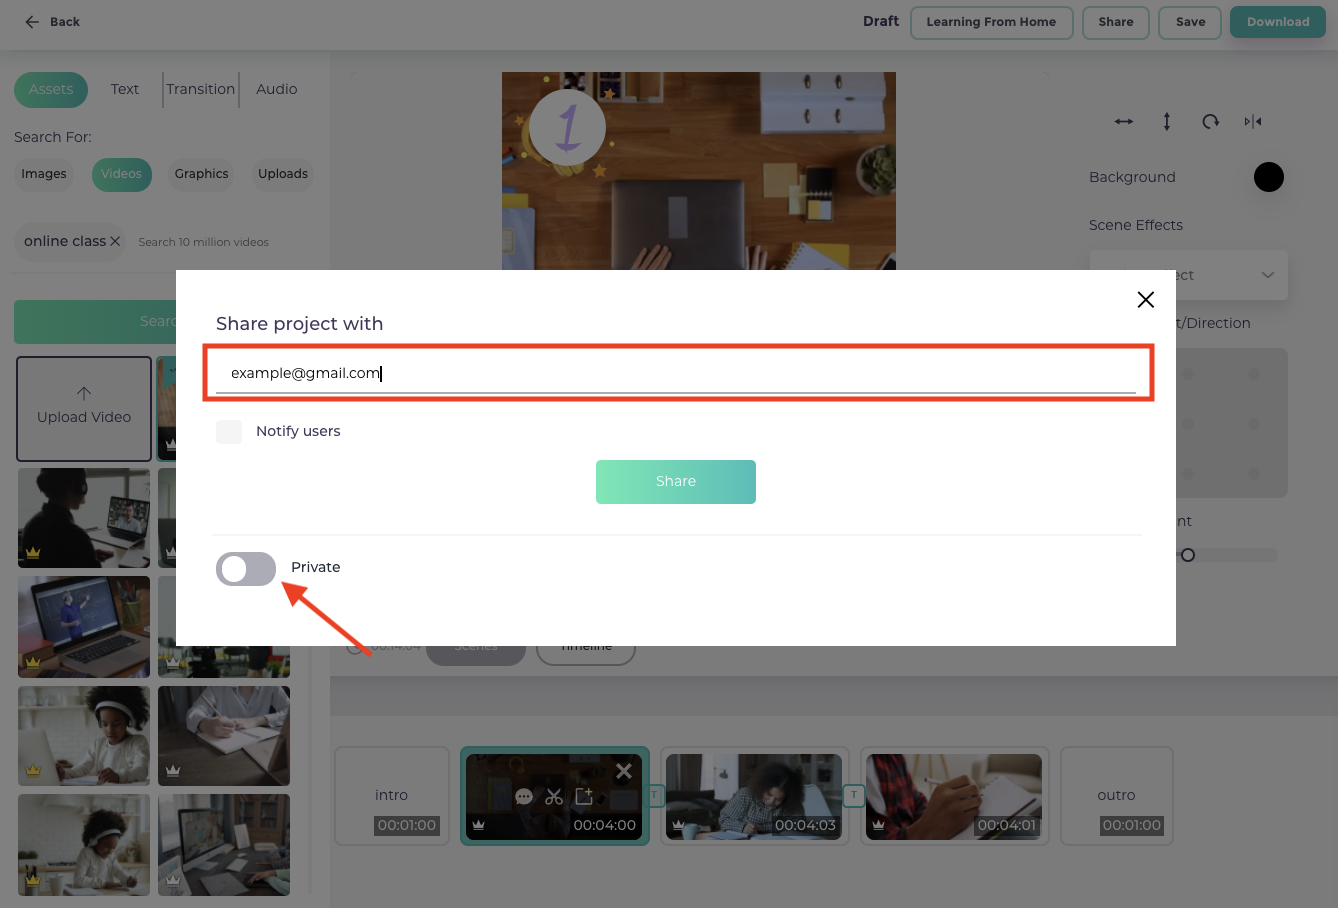 How to share your video projects in Videomaker - Share privately through an email invitation